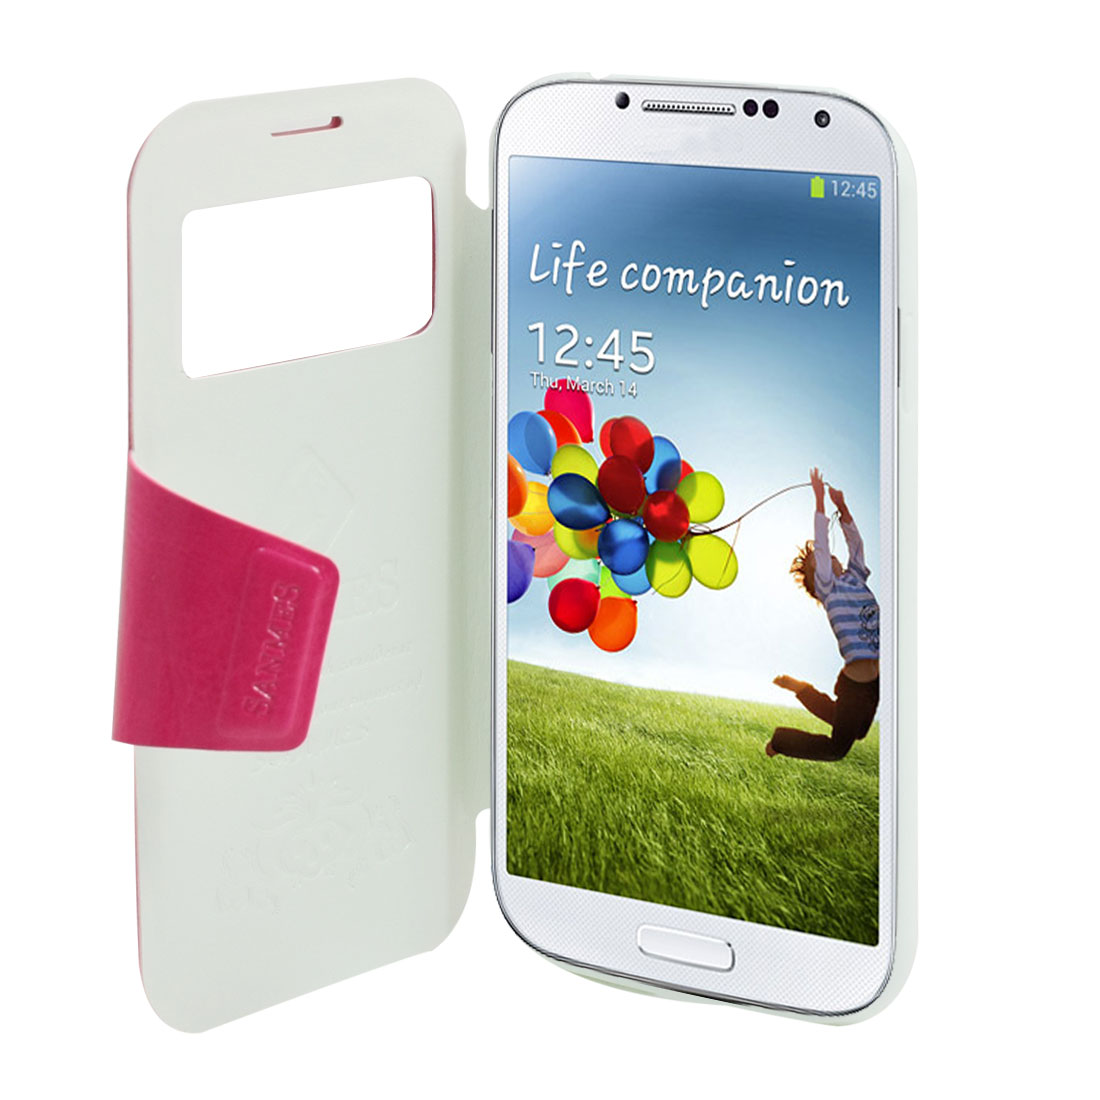 Fuchsia S View Caller ID Flip Cover Case Stand for Samsung Galaxy S4 i9500